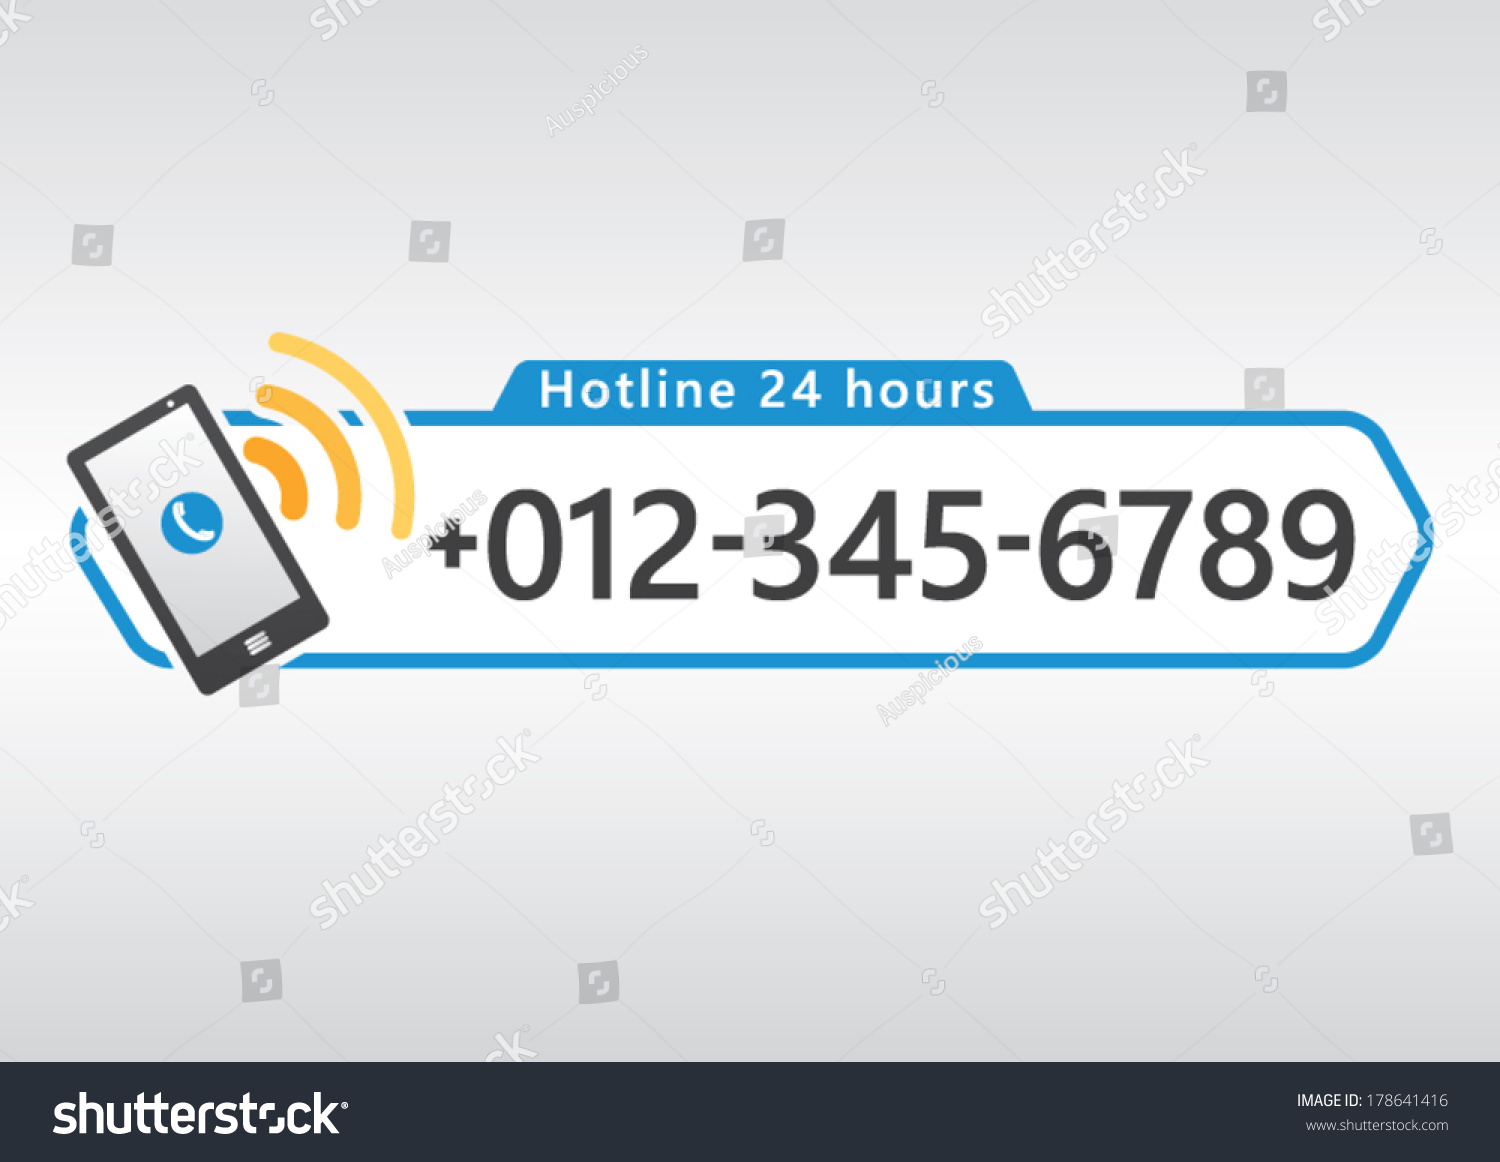 Hotline cell phone icon number design stock vector 178641416 hotline cell phone icon with number design for app or website vector illustration biocorpaavc